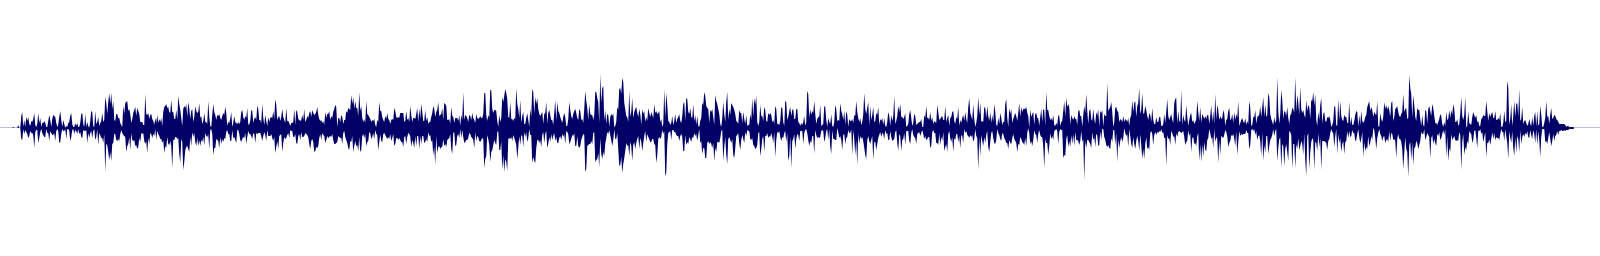 waveform of track #98538